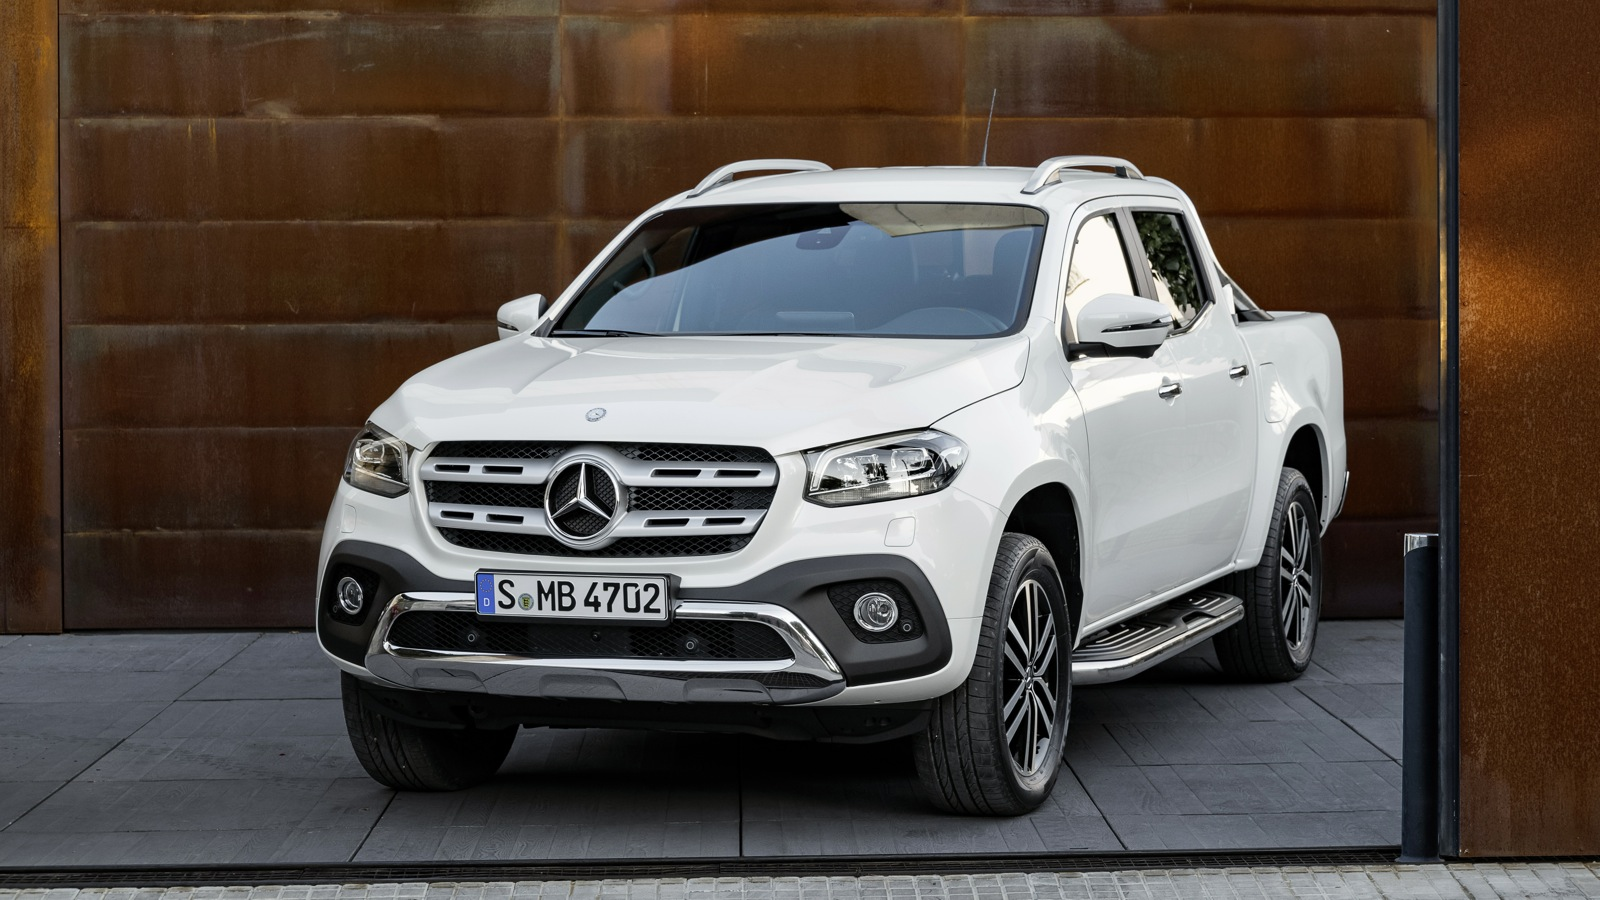 mercedes benz x class could gain amg styling pack but won t get a v8 photos 1 of 3. Black Bedroom Furniture Sets. Home Design Ideas